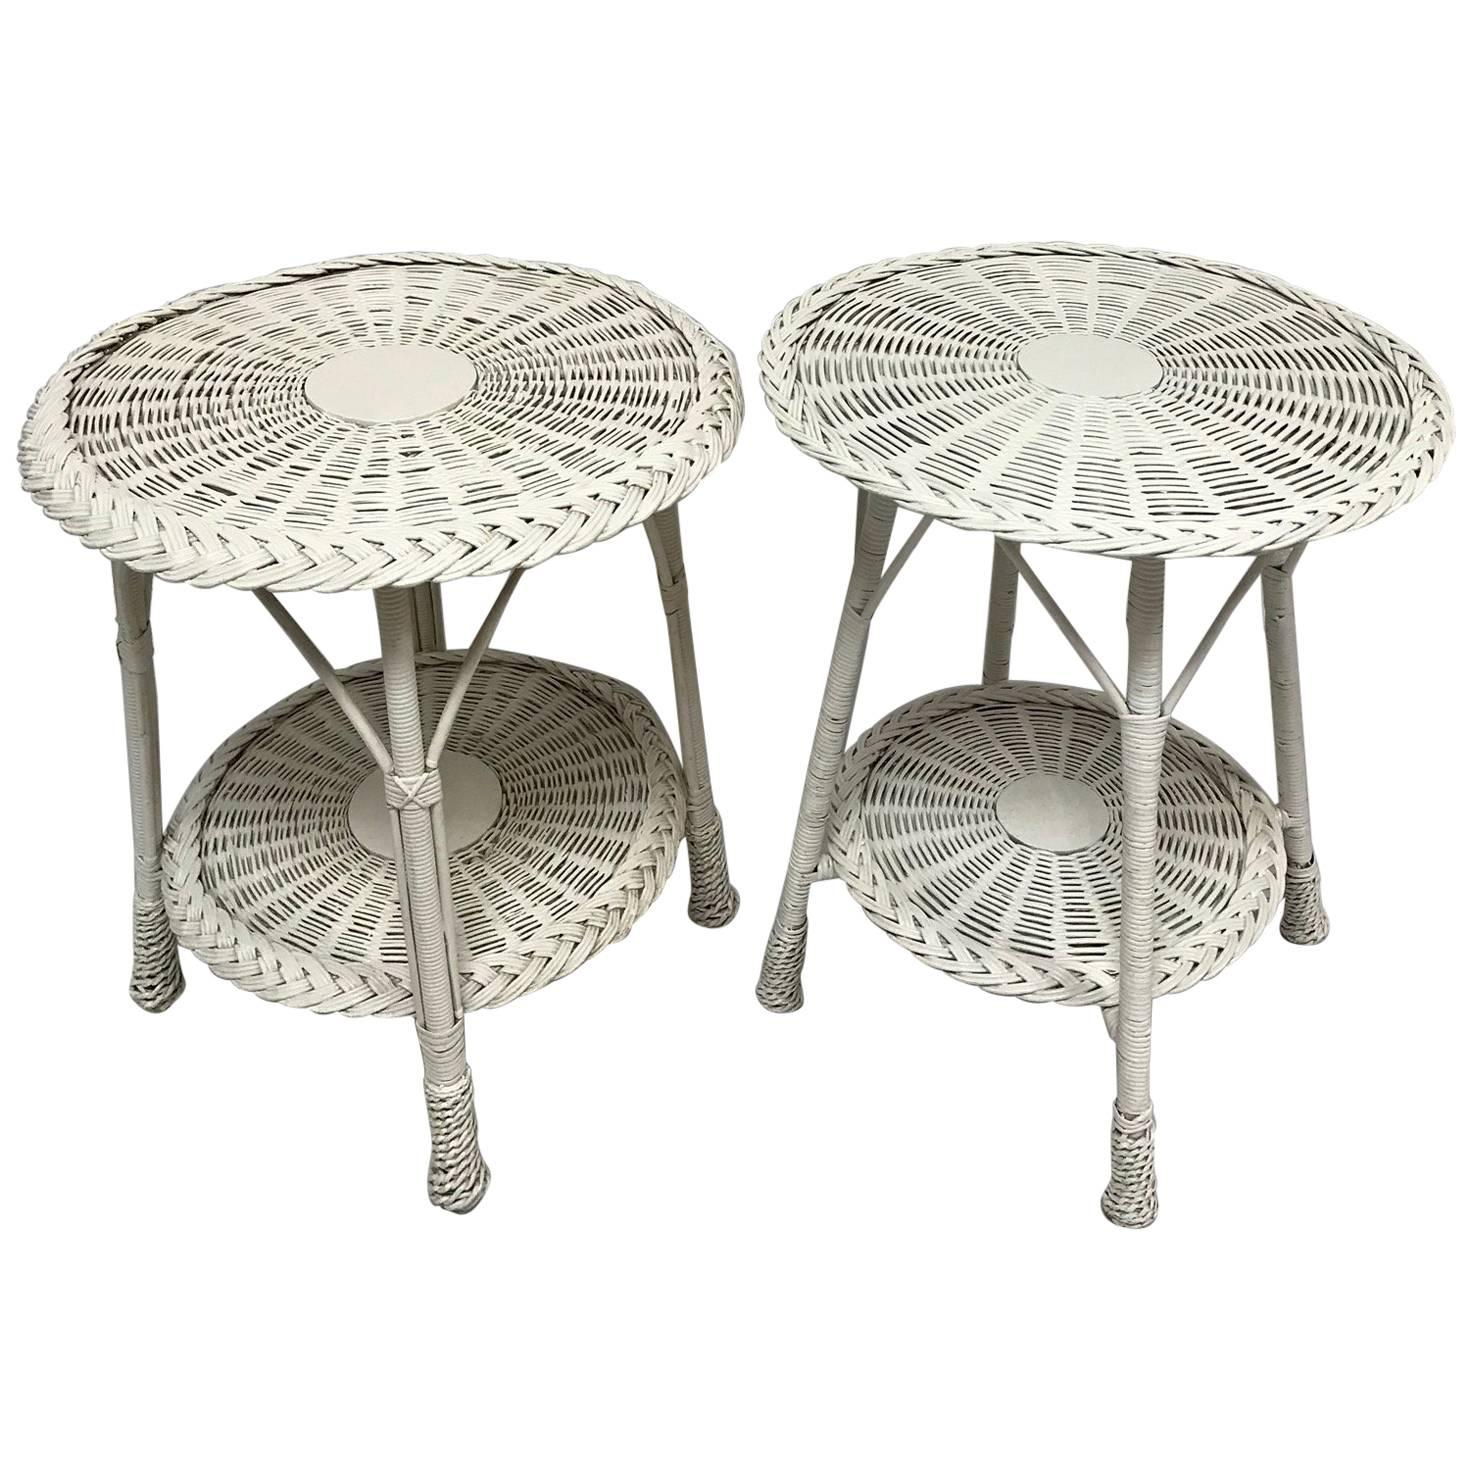 White Wicker Side Tables, 20th Century